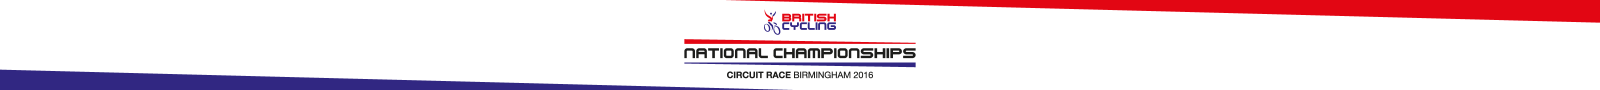 British Cycling National Circuit Race Championships